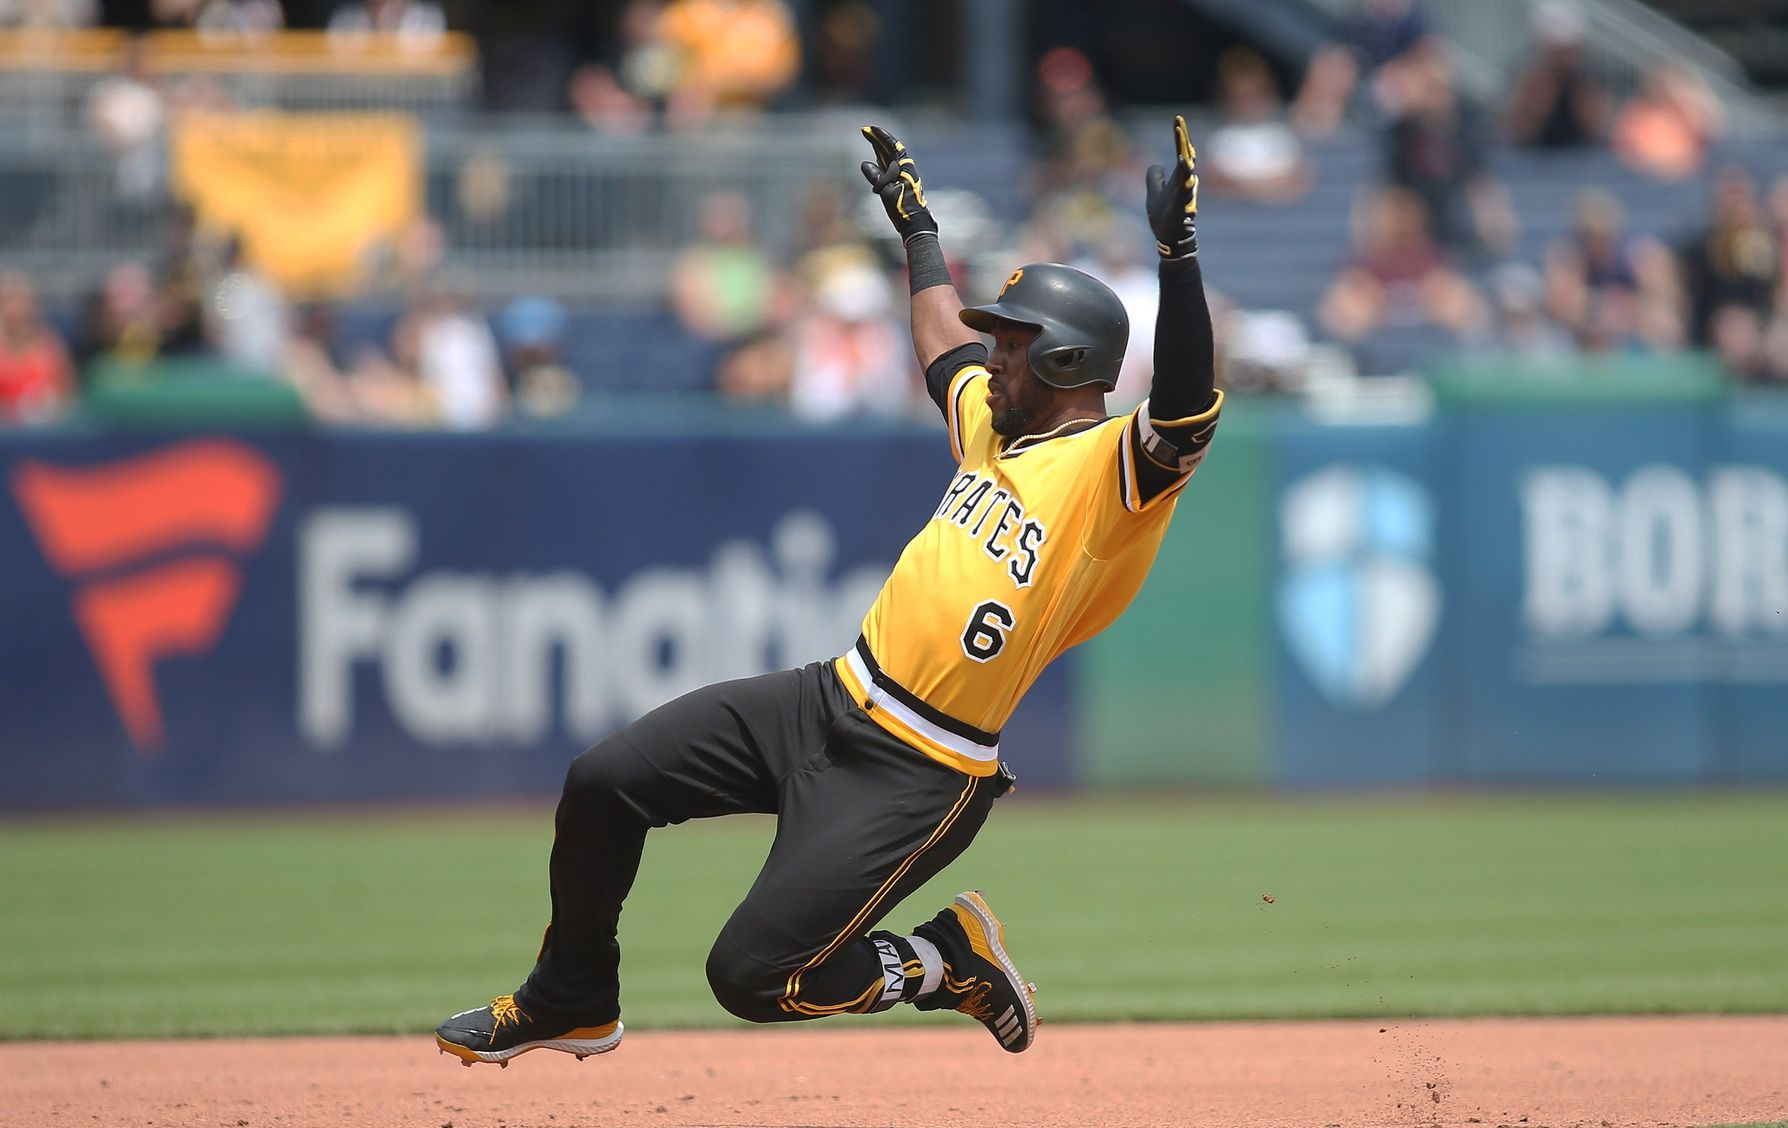 Nothing beats seeing the Pirates player sliding into the